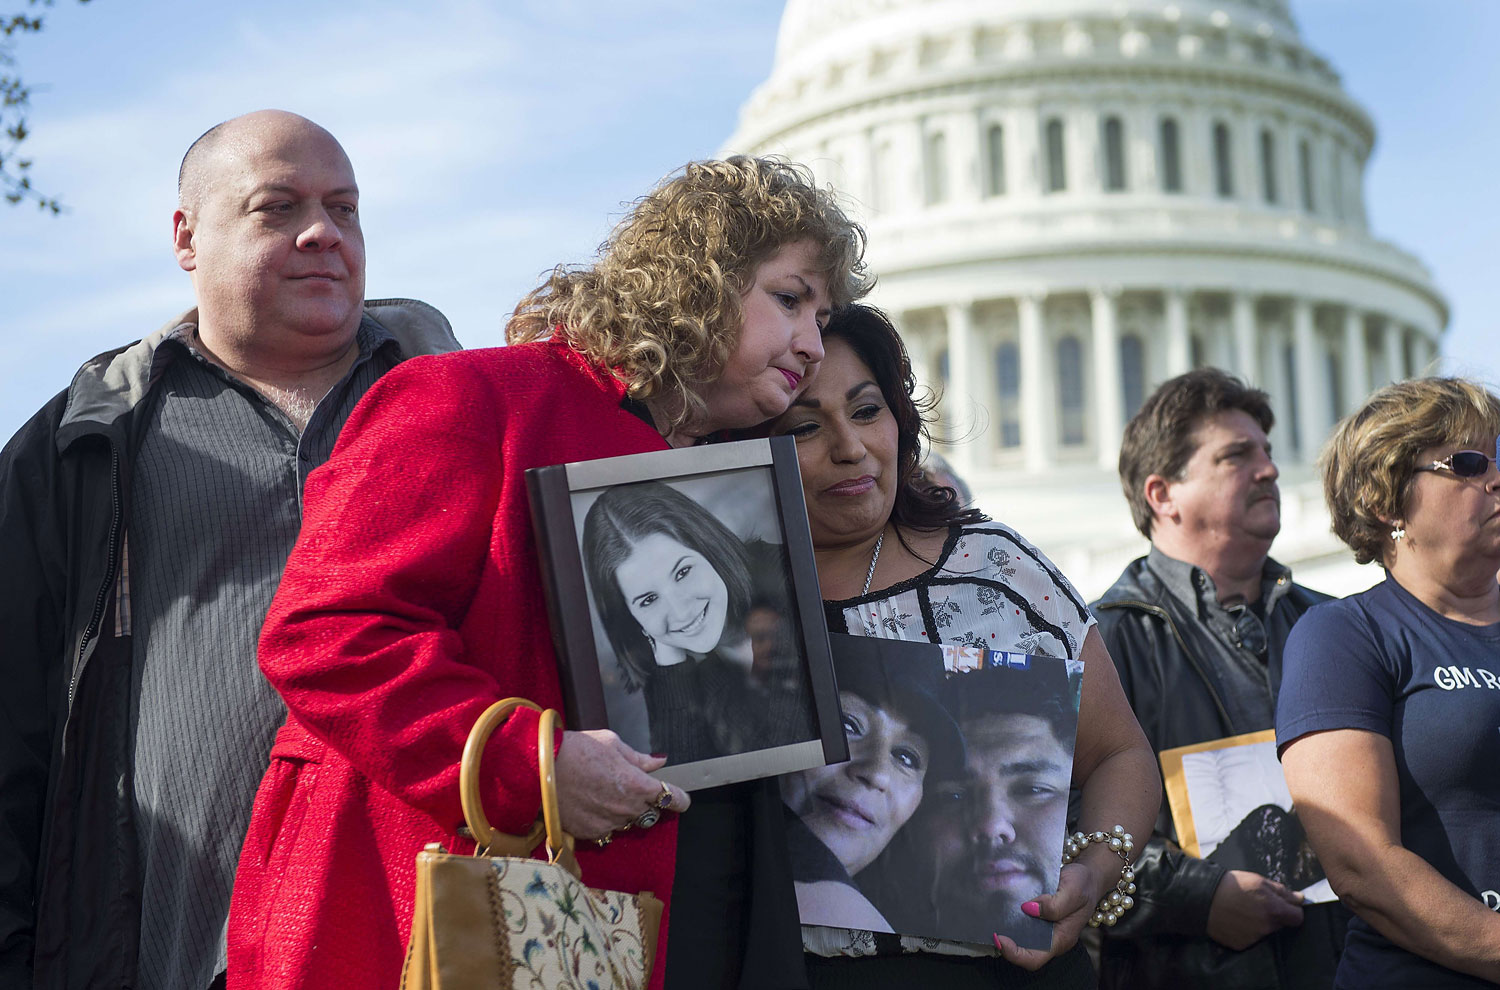 Mary Ruddy, whose daughter Kelly died in the crash of a 2005 Chevy Cobalt, hugs Rosie Cortinas, whose son Amador died in the crash of a 2005 Chevy Cobalt as well, during a press conference with the family members of deceased drivers on Capitol Hill in Washington, DC, April 1, 2014.